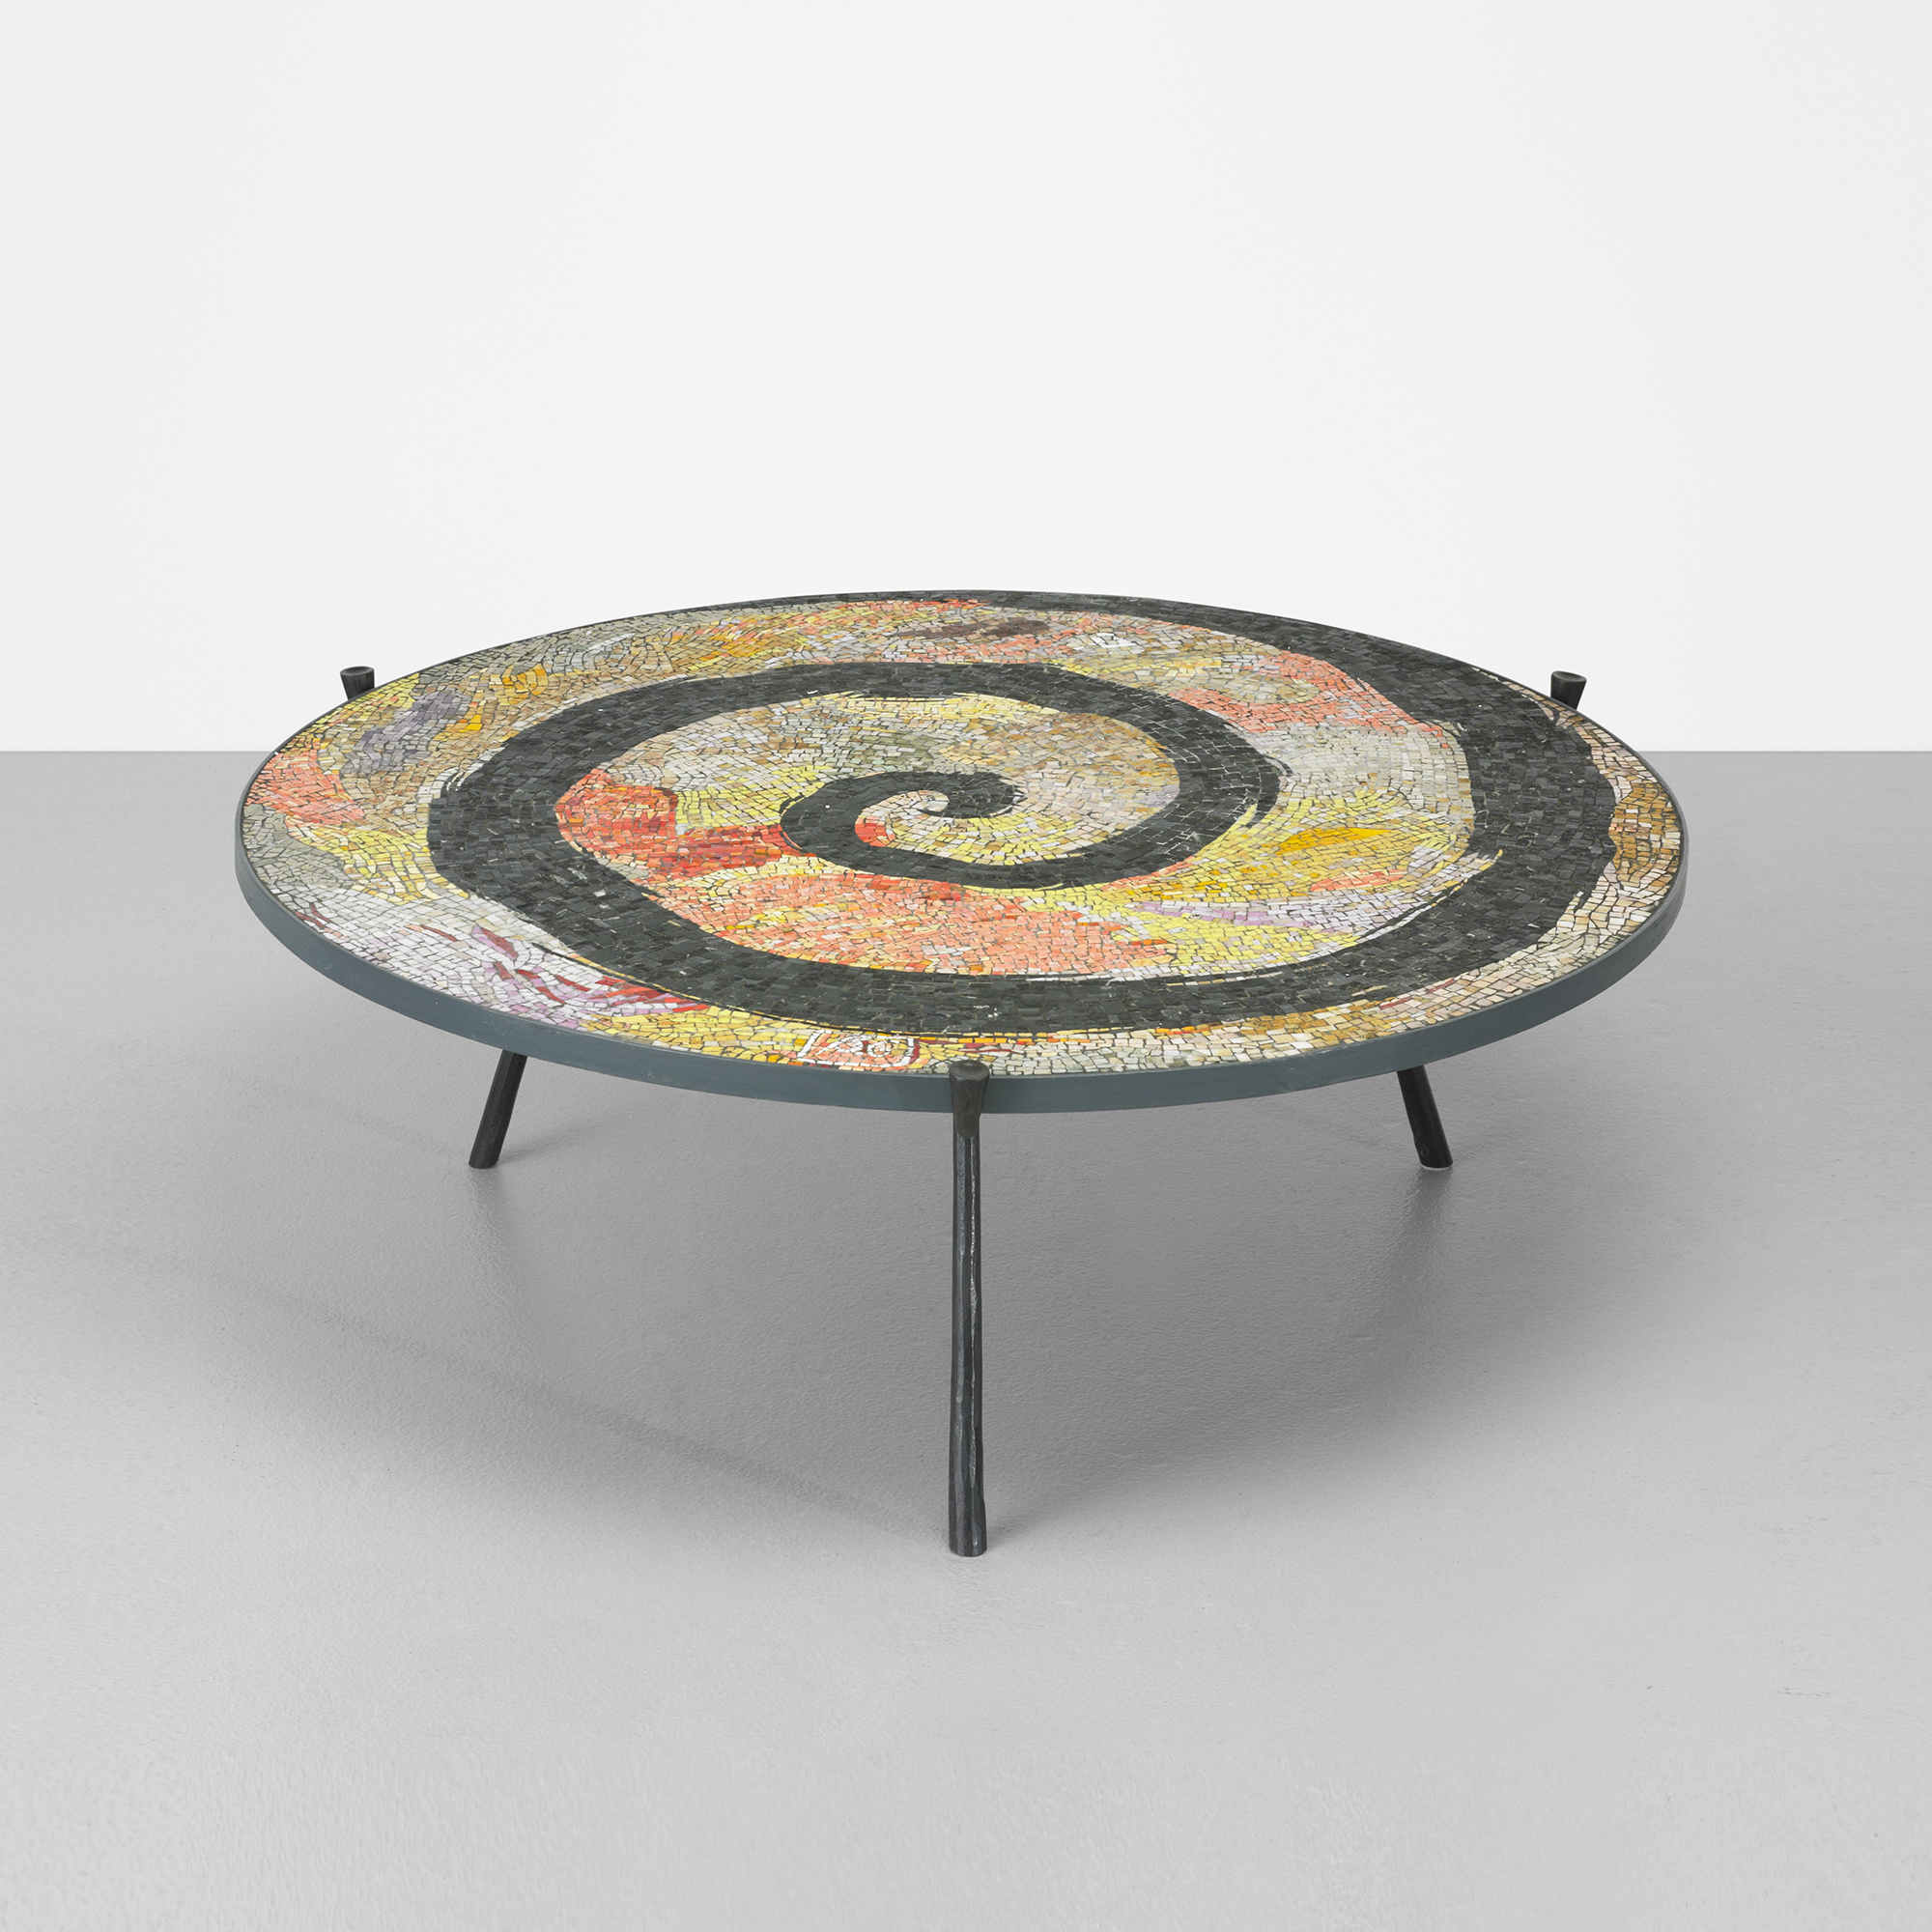 332 Elizabeth Garouste And Mattia Bonetti Spiral Coffee Table 1 Of 5